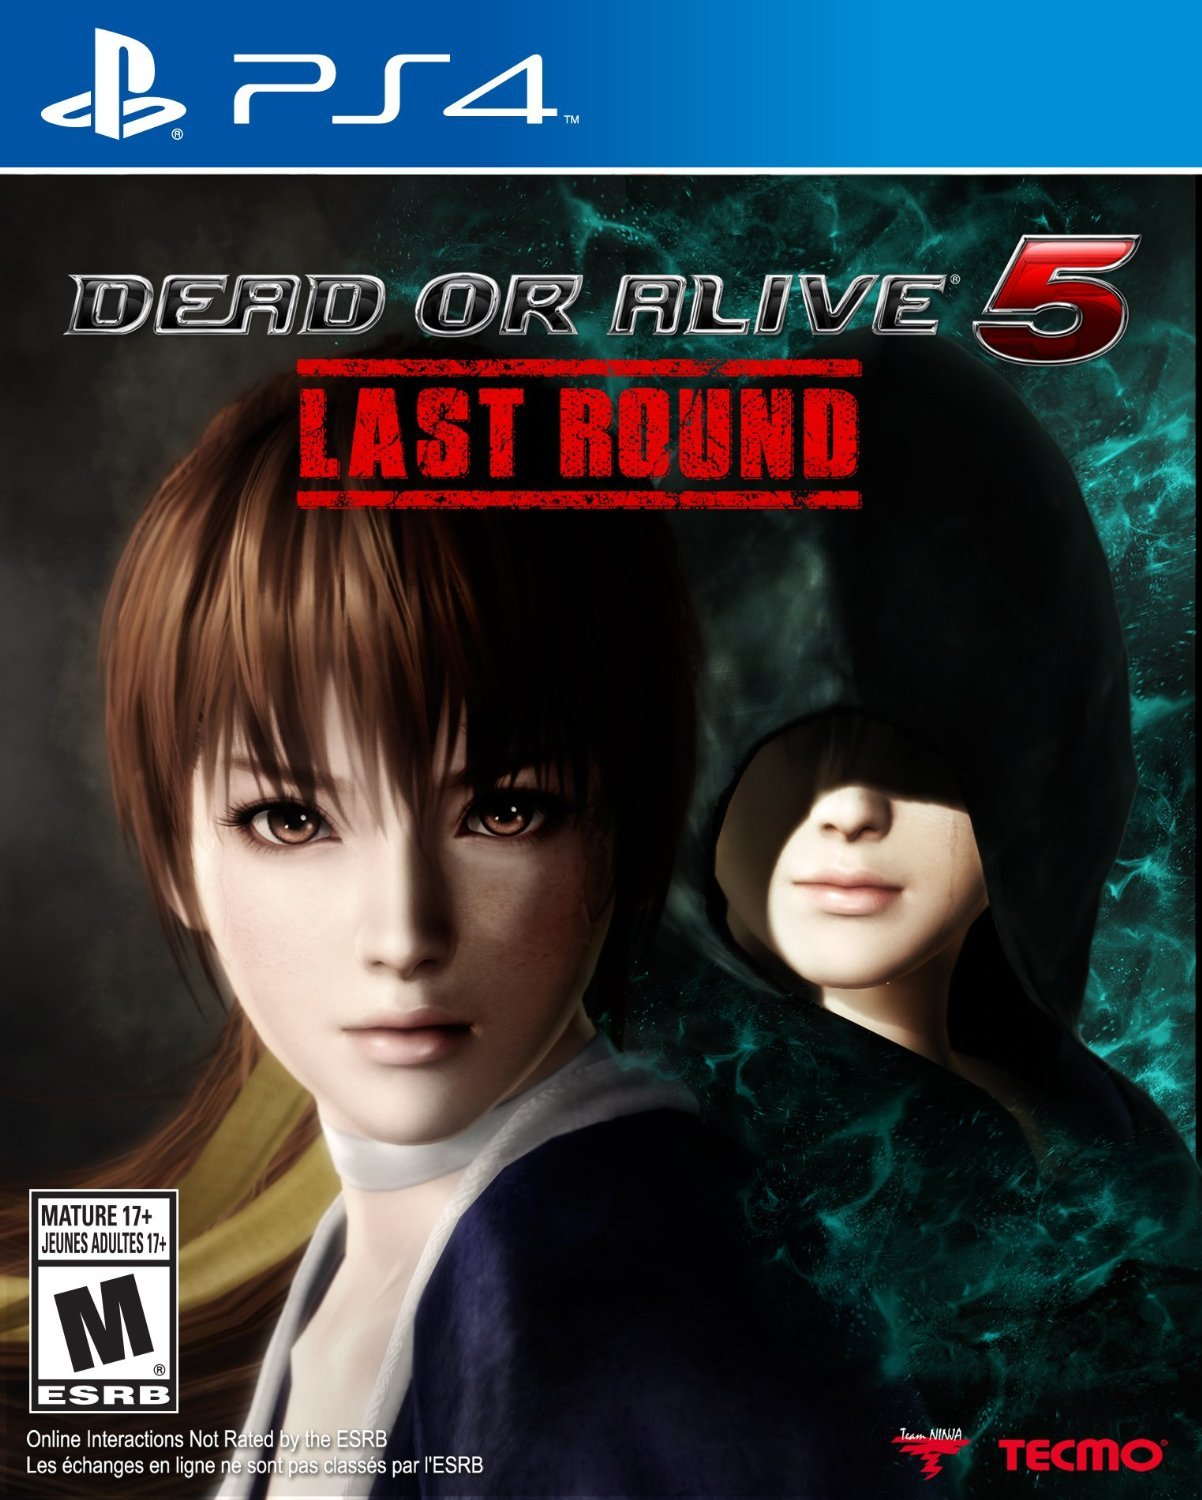 DEAD OR ALIVE 5 Last Round PS4 Physical Game Disc US